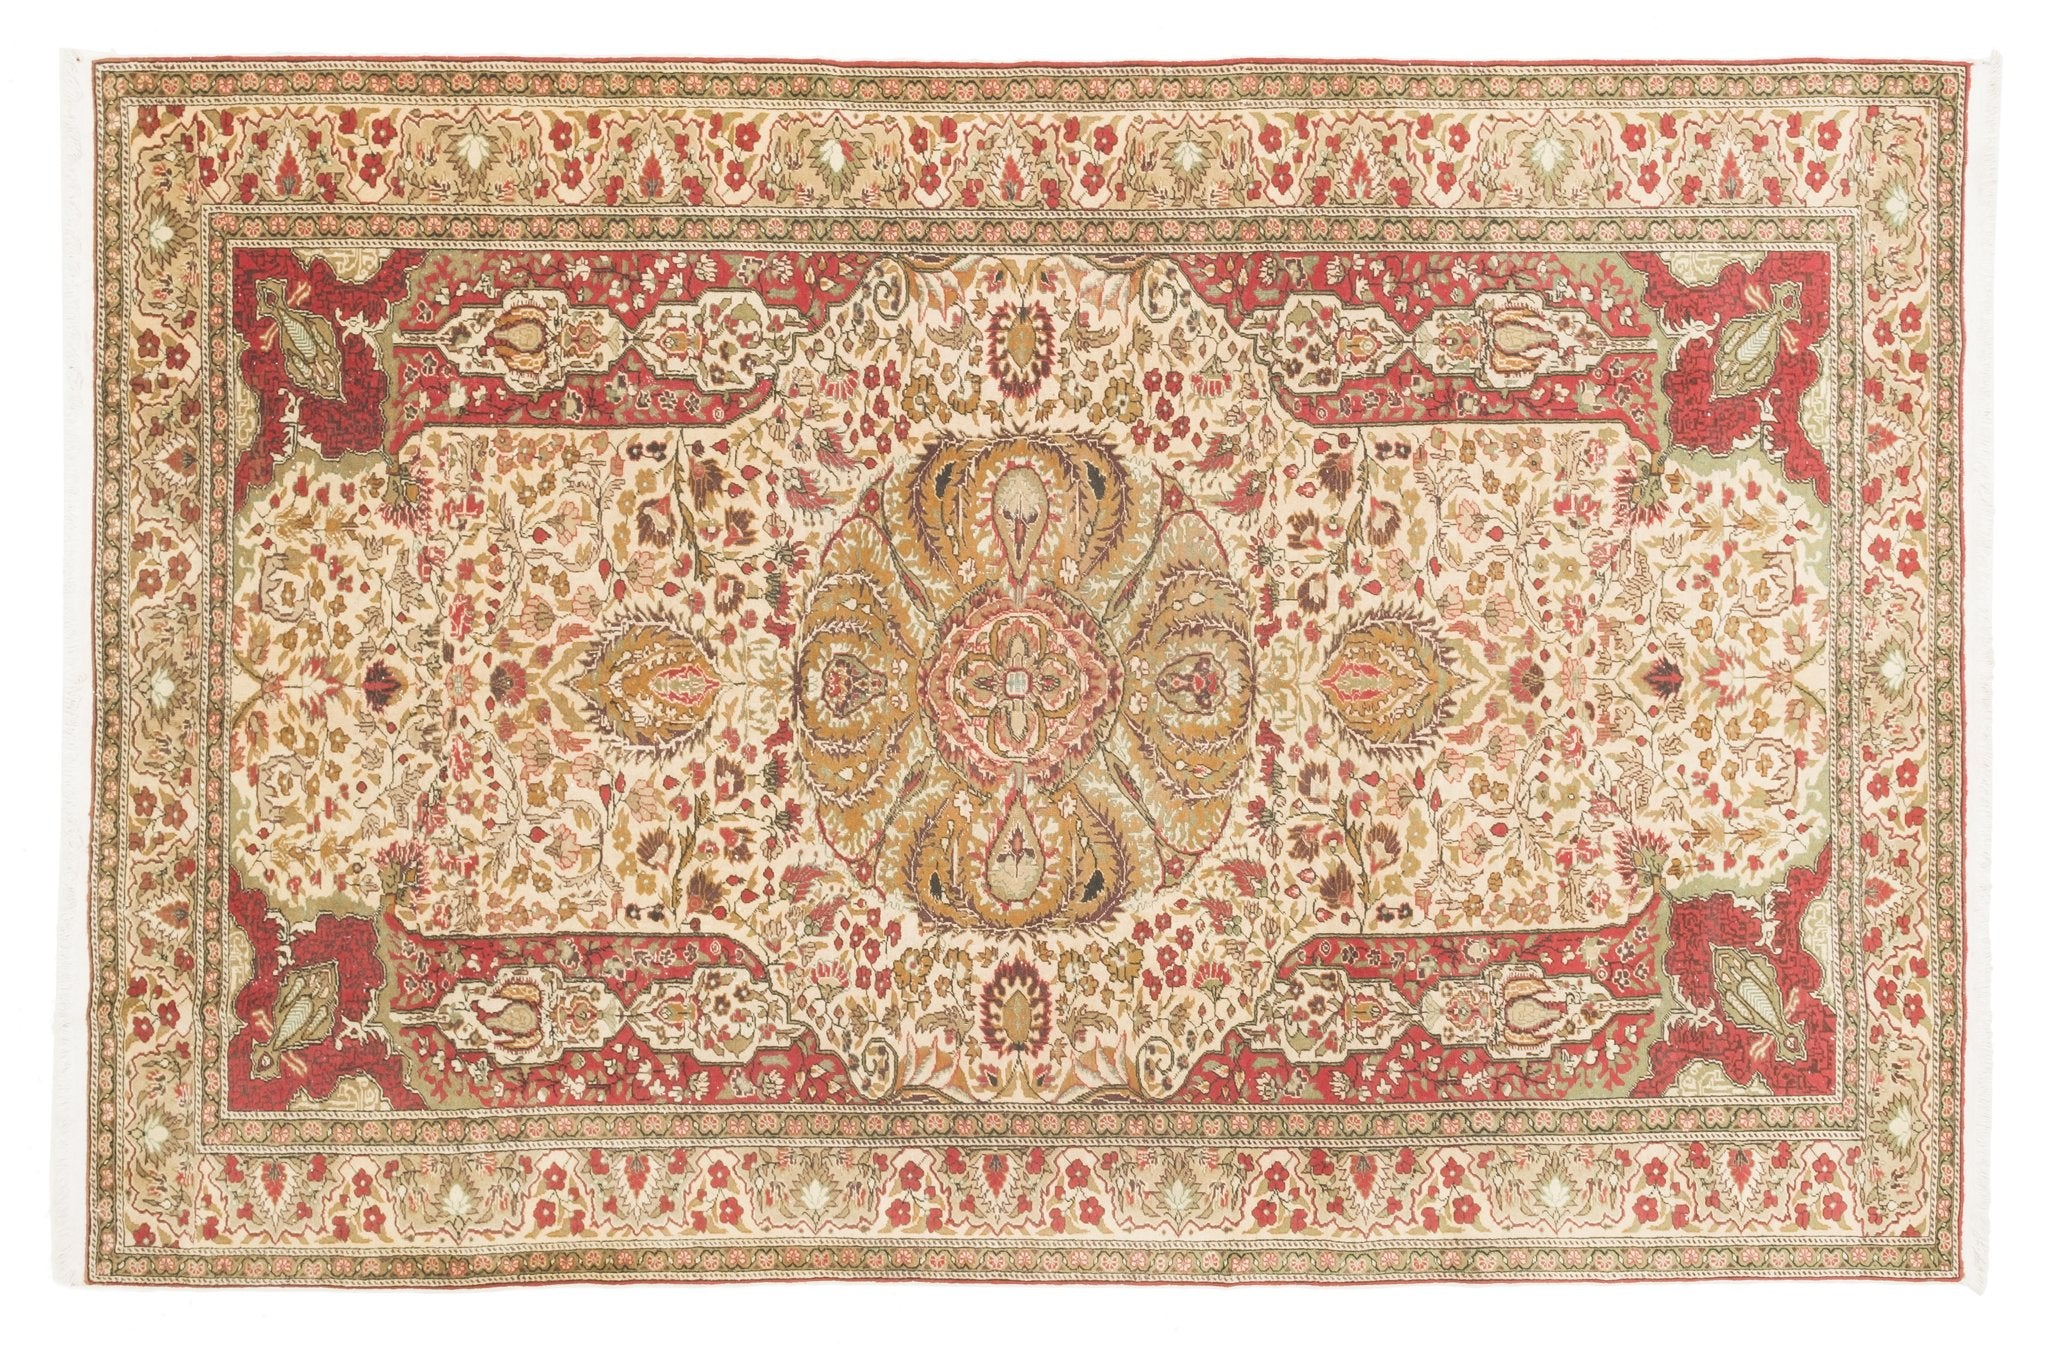 Vintage Turkish Rug Caliopia